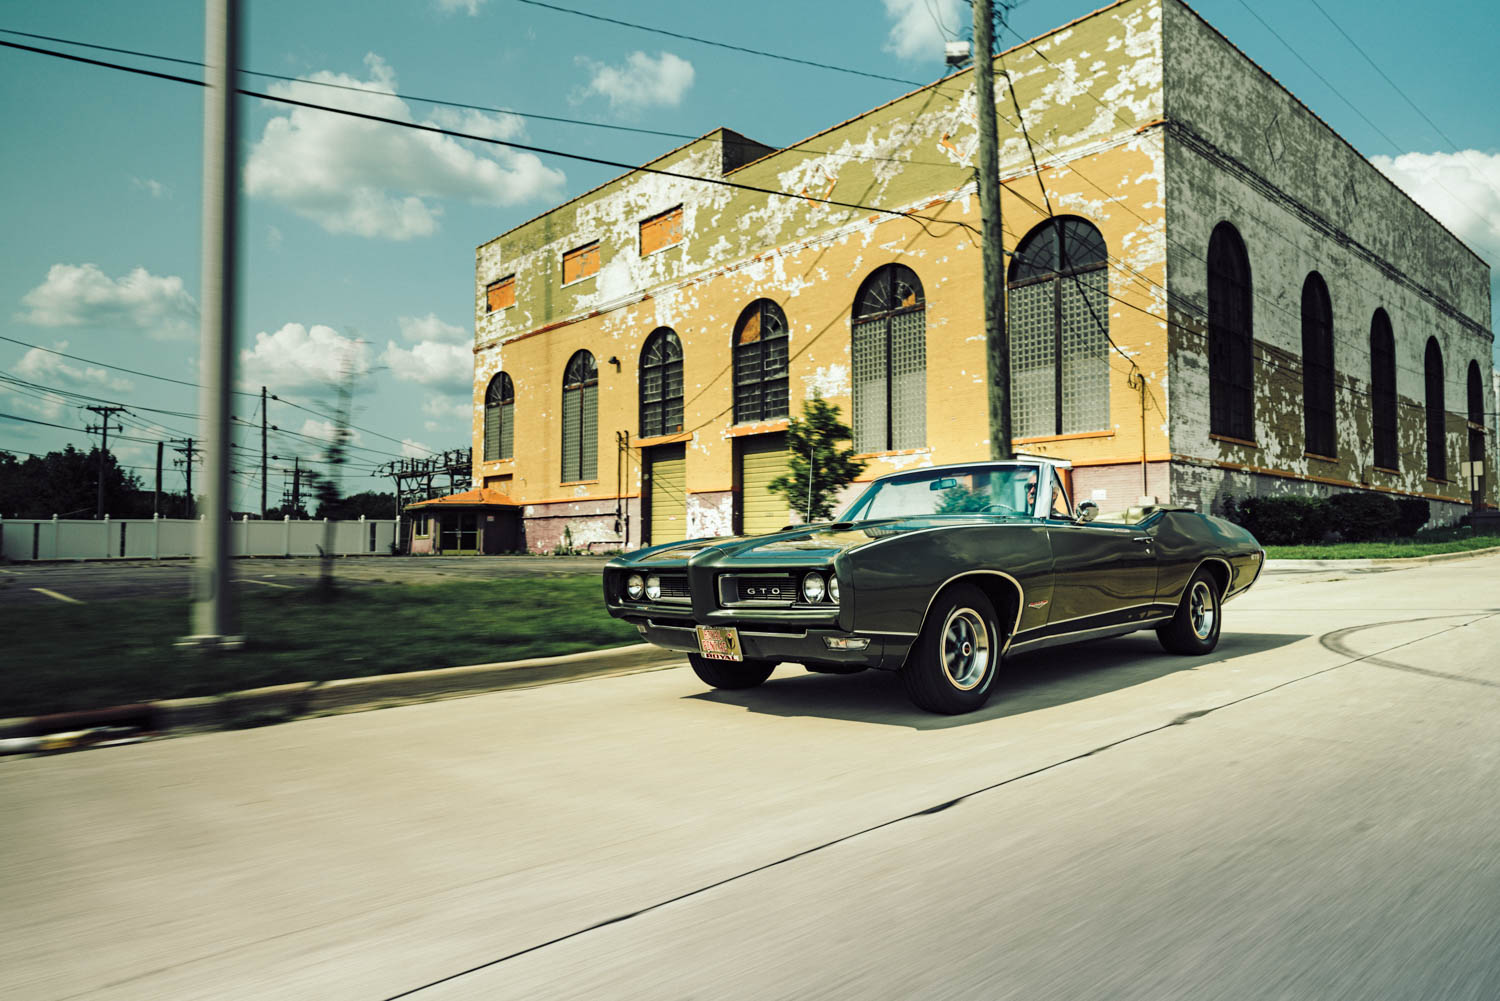 In 1986, Eric Schiffer paid $1000 for his 1968 Royal Bobcat GTO, not knowing exactly what it was. It had been thrashed from years of youthful carelessness by previous owners. Schiffer spent two years restoring it.